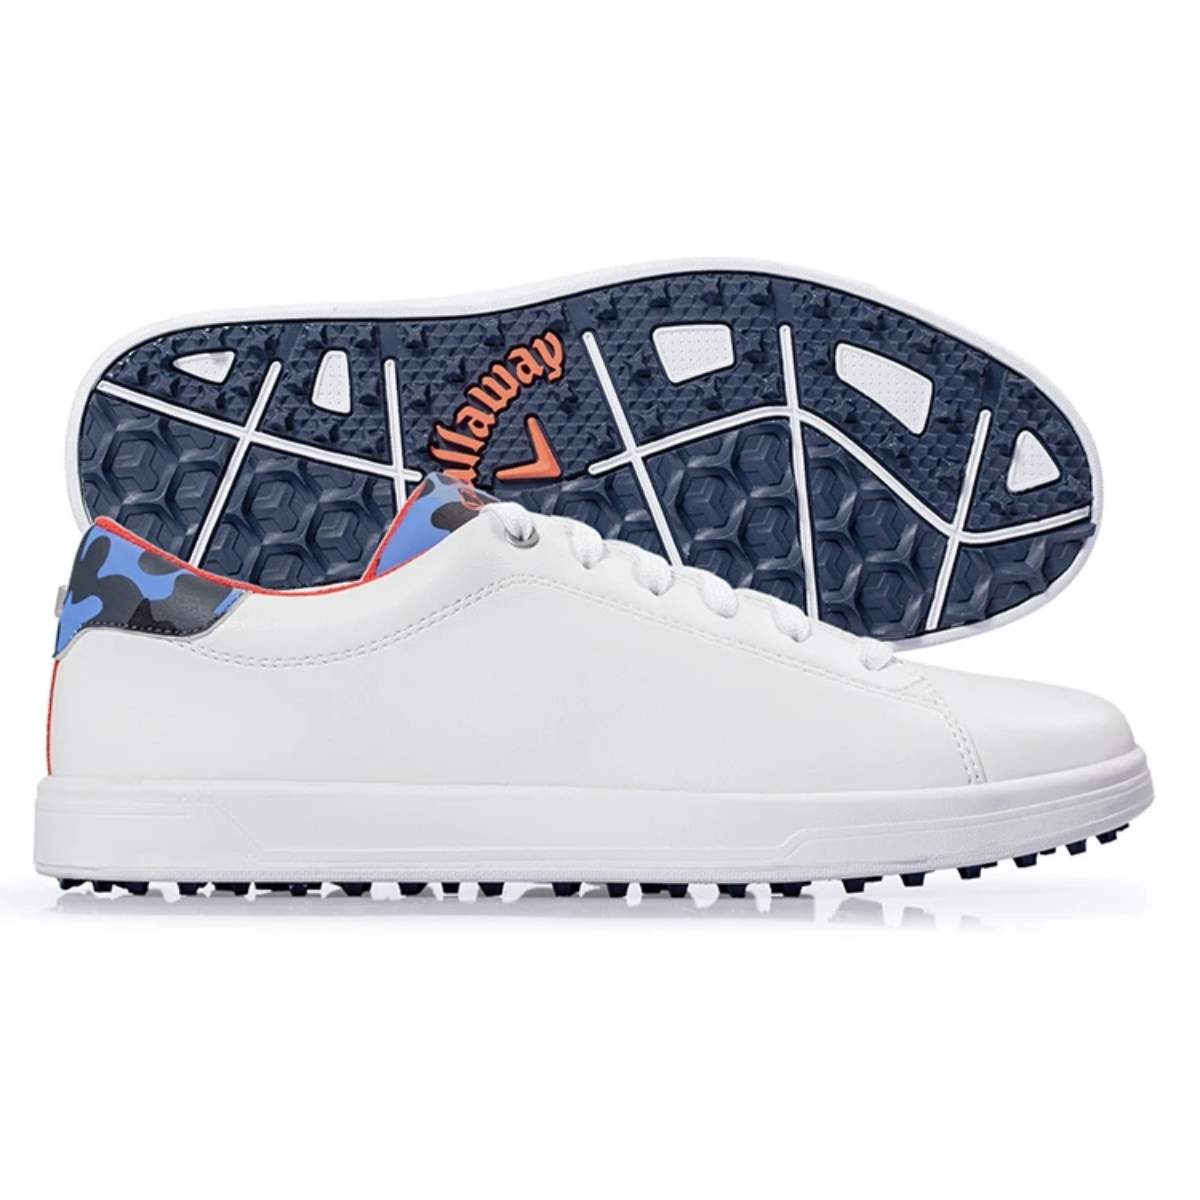 Callaway Women's Del Mar Golf Shoe - White